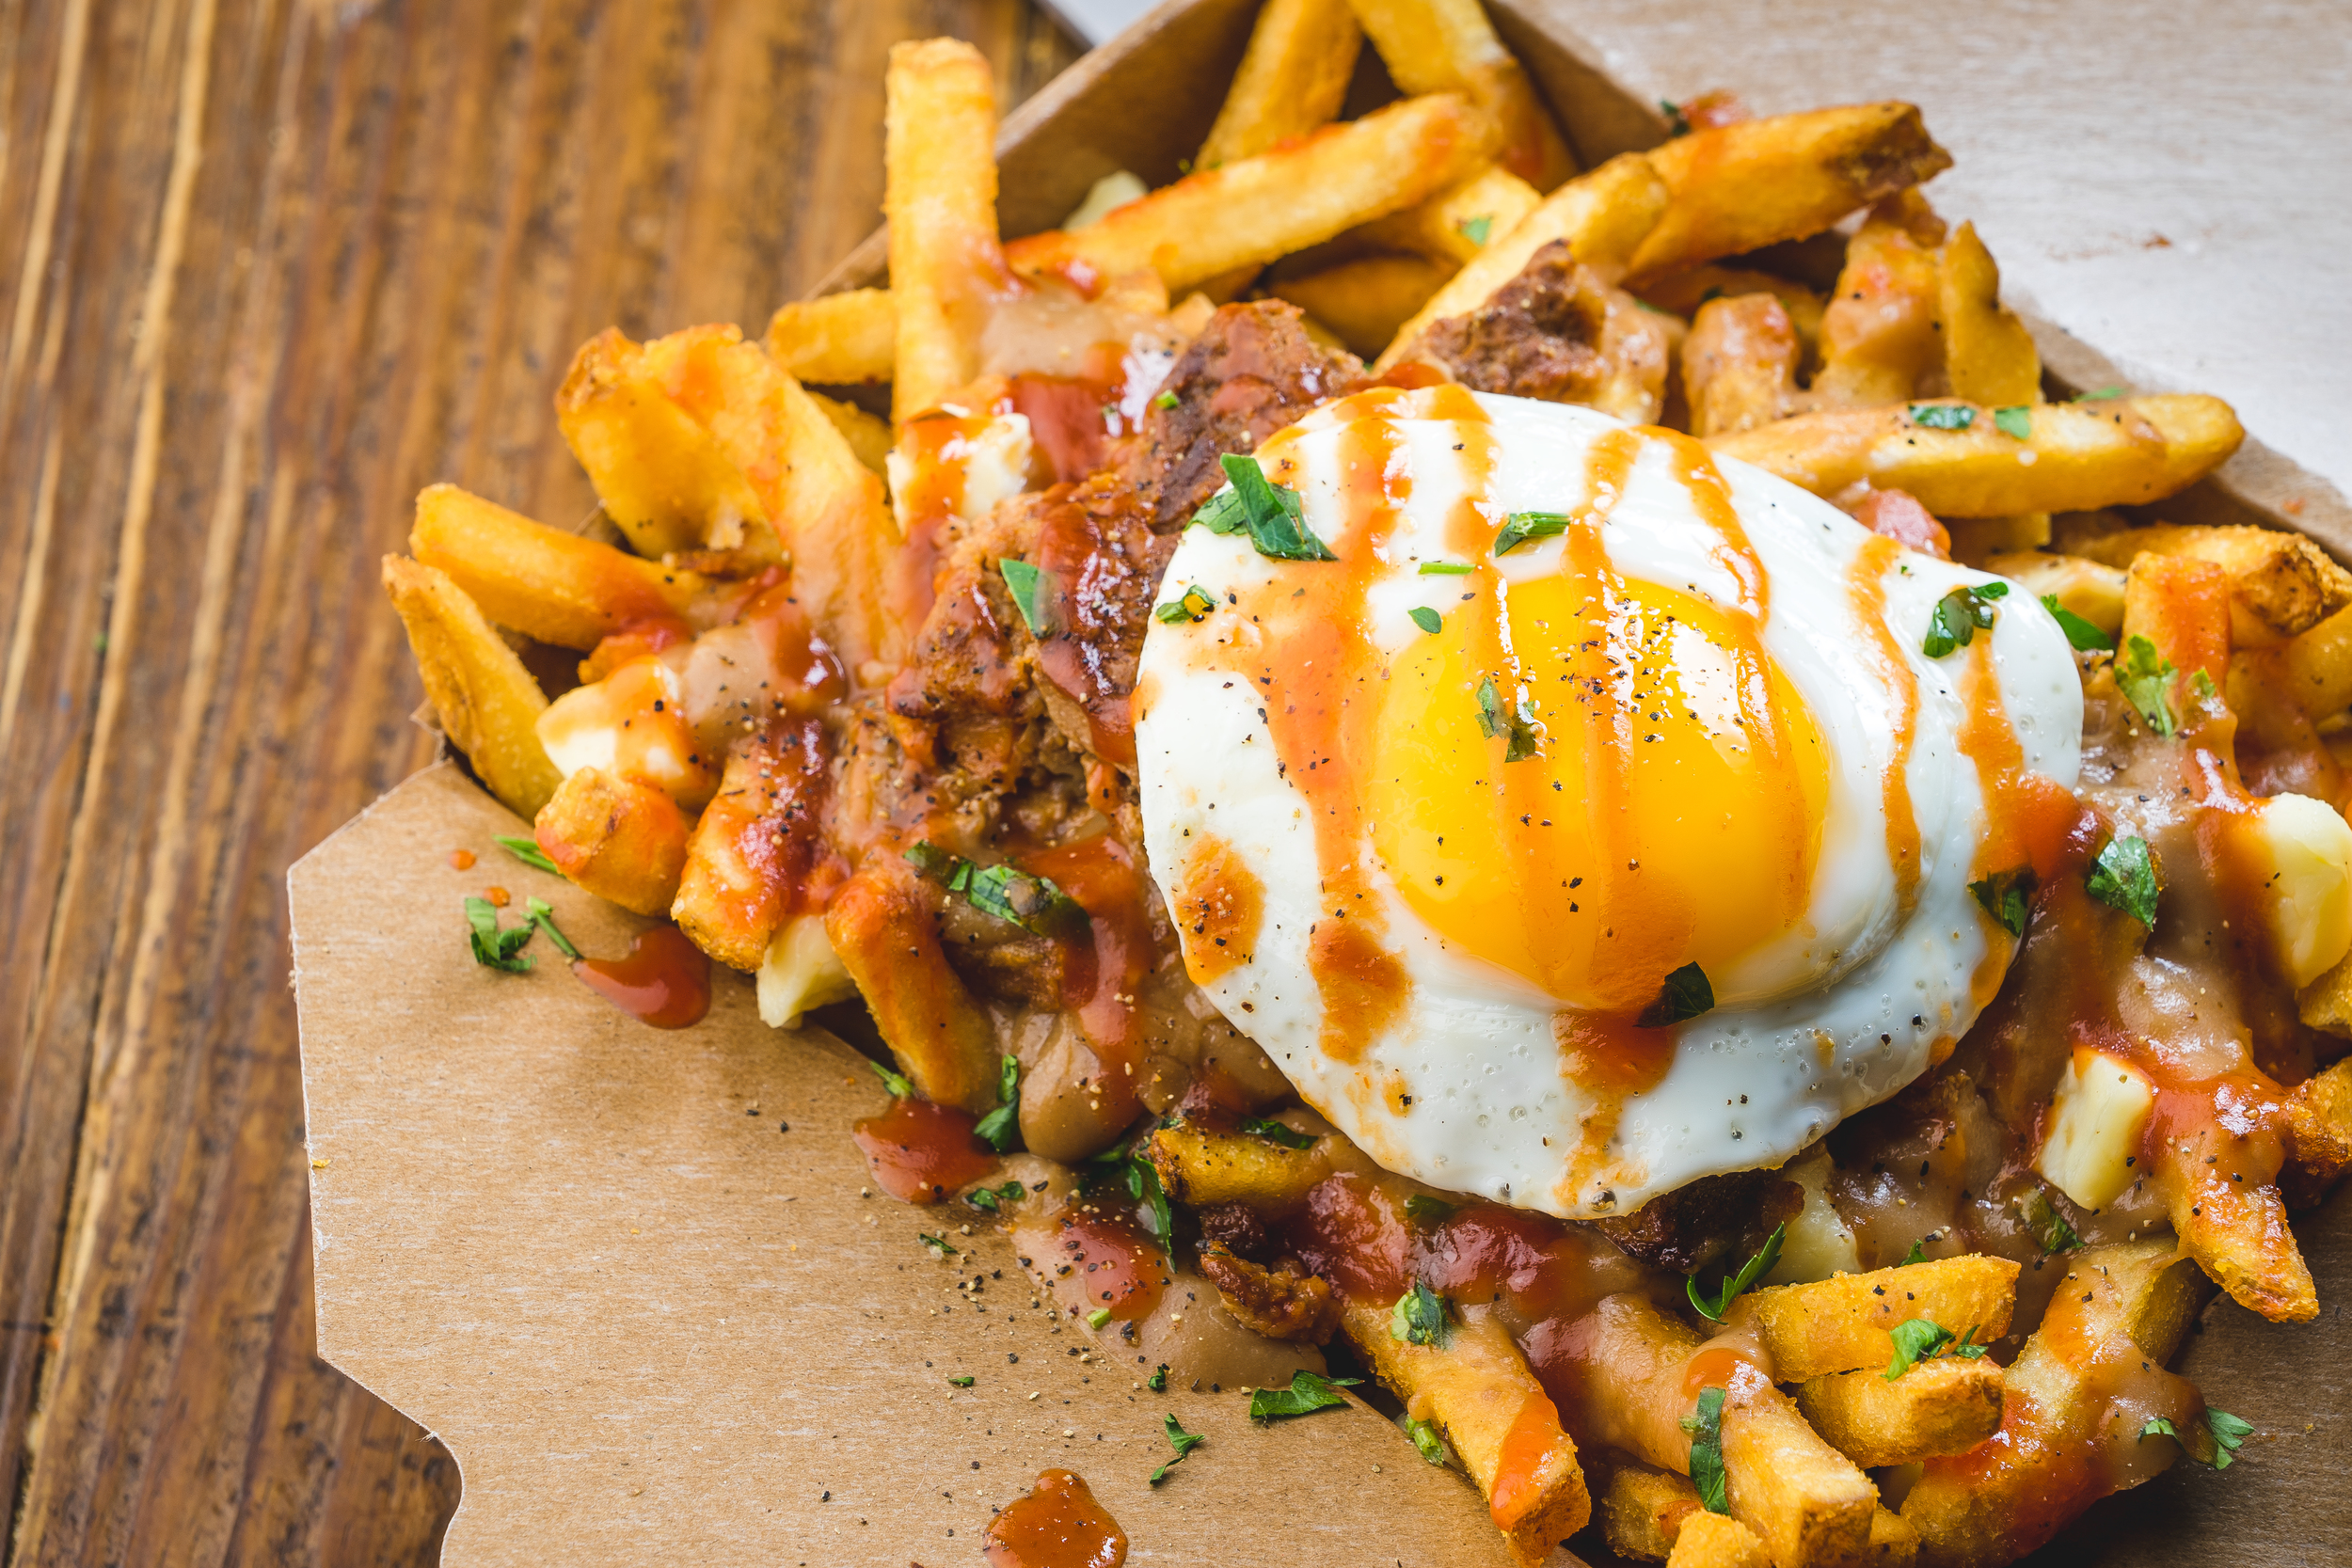 Poutine with egg